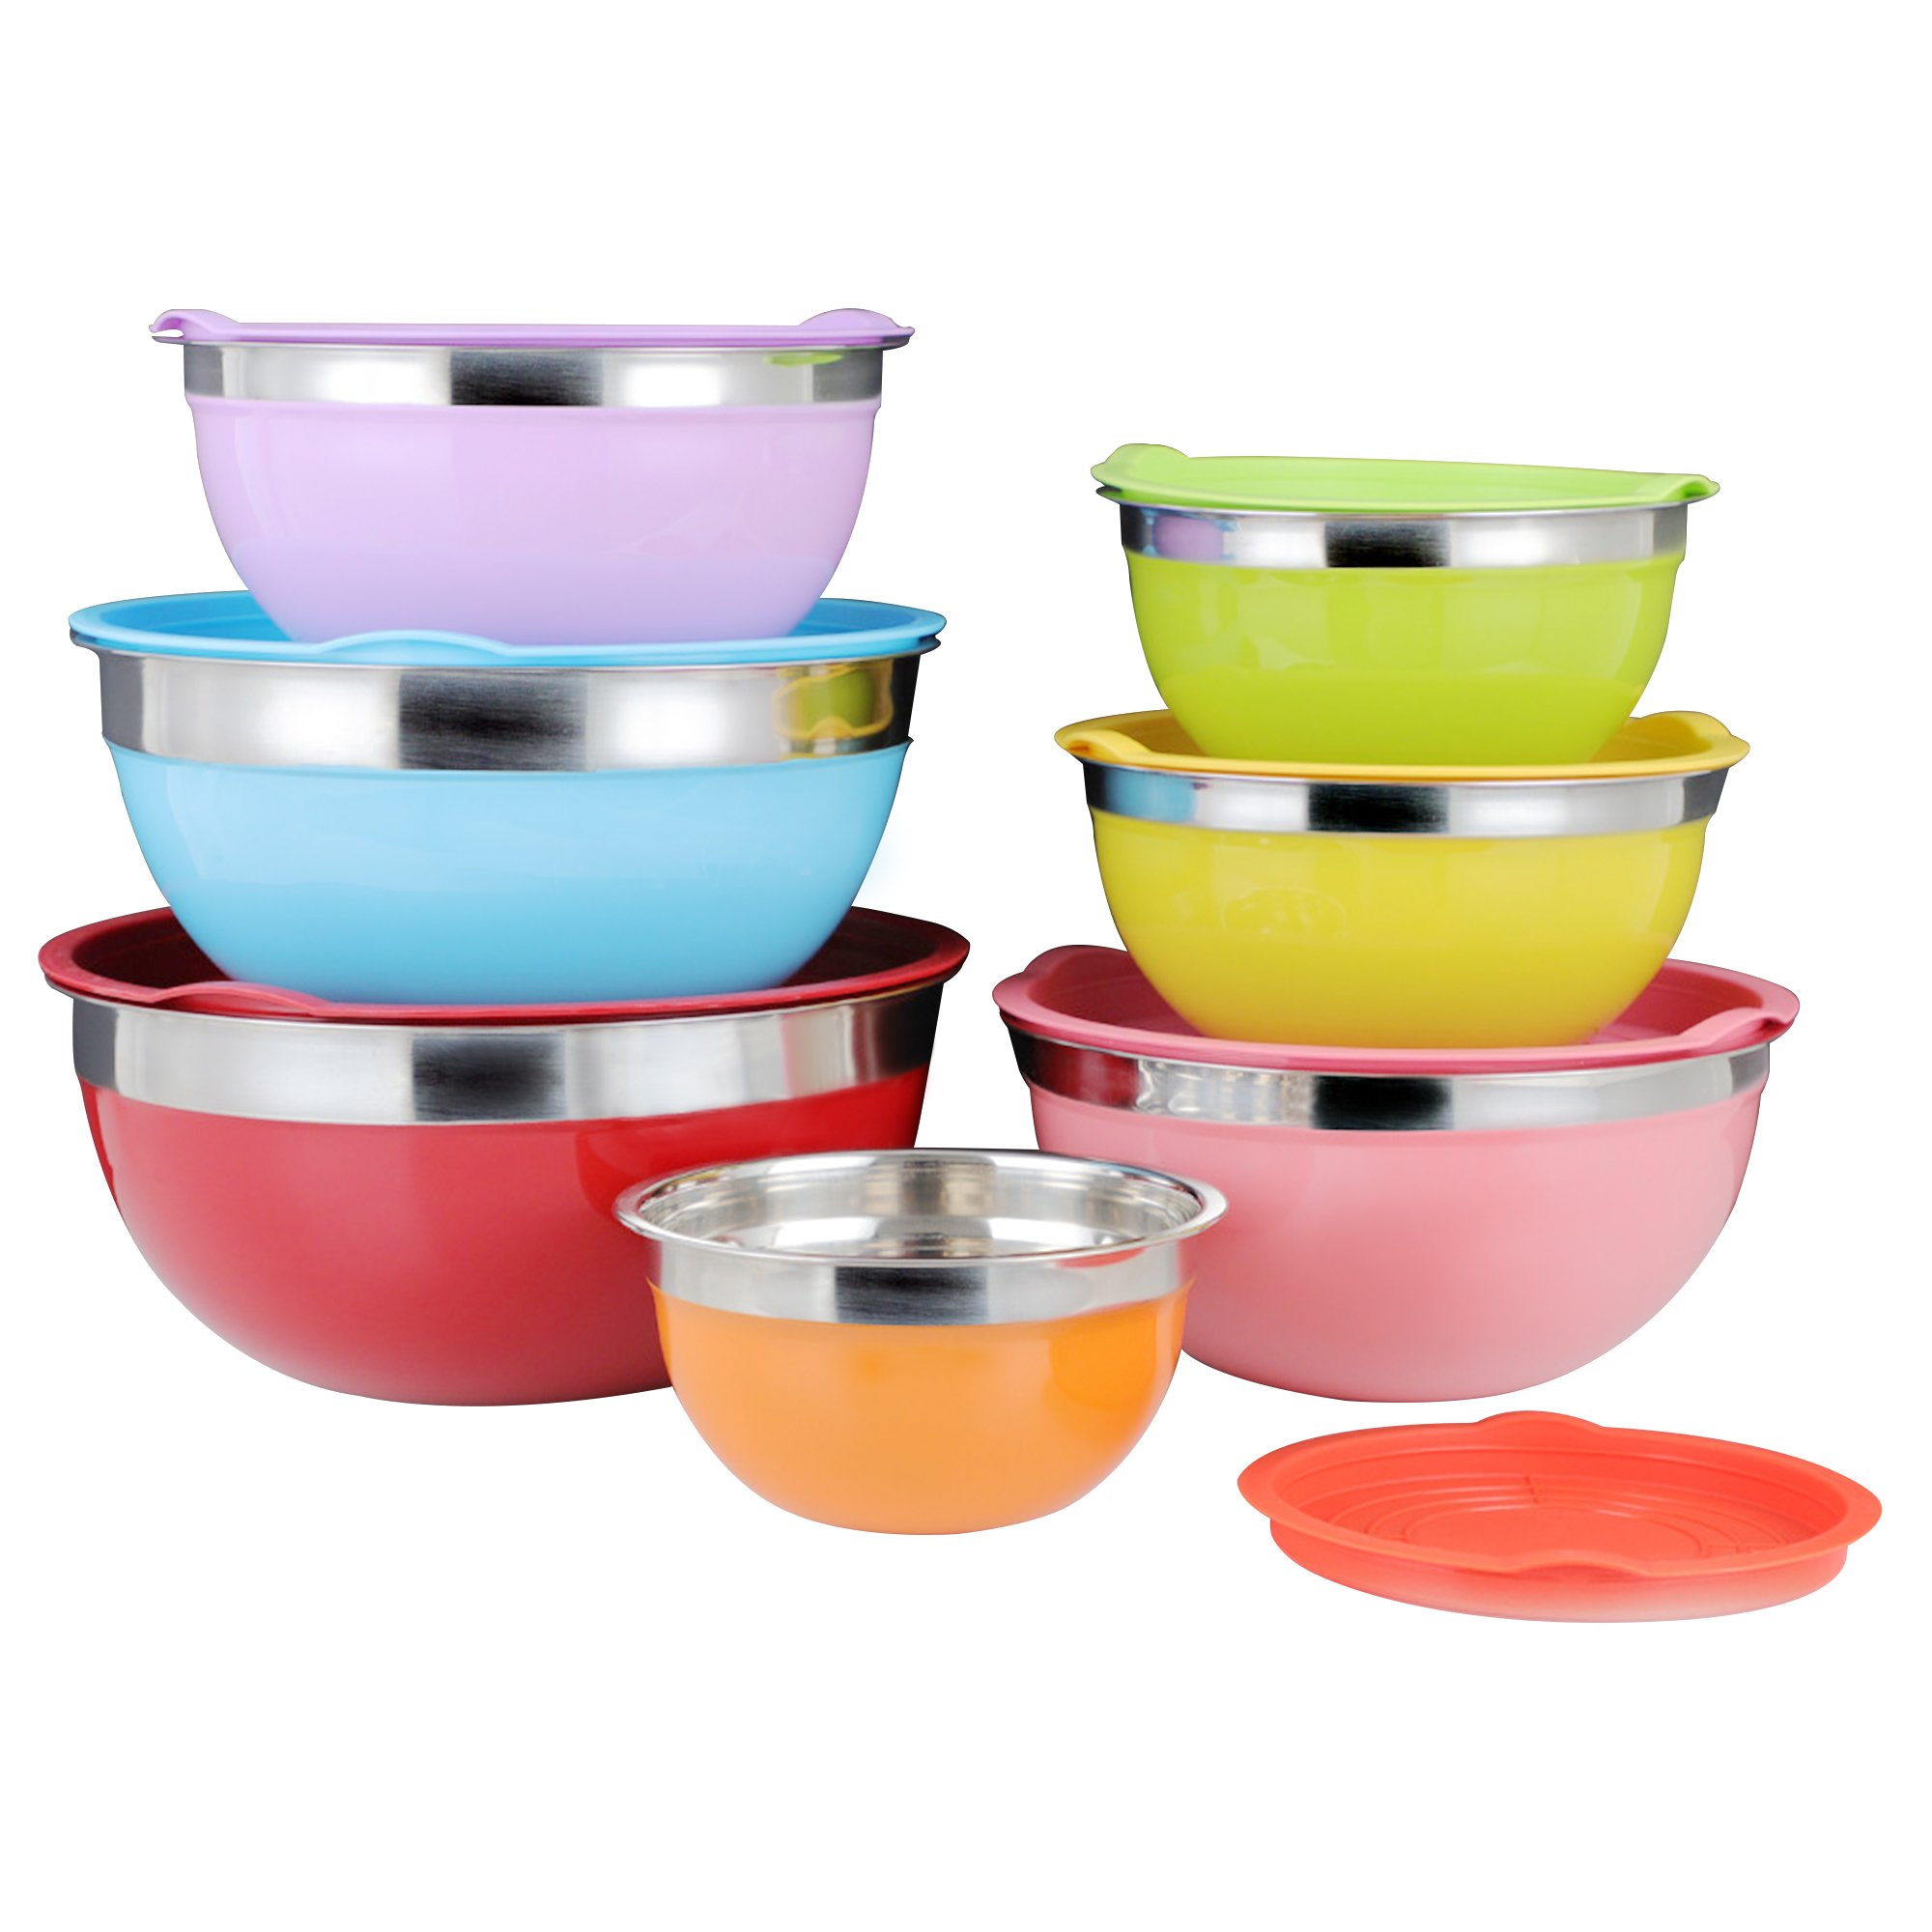 Colorful Stainless Steel Mixing Bowl - 7Pcs Set